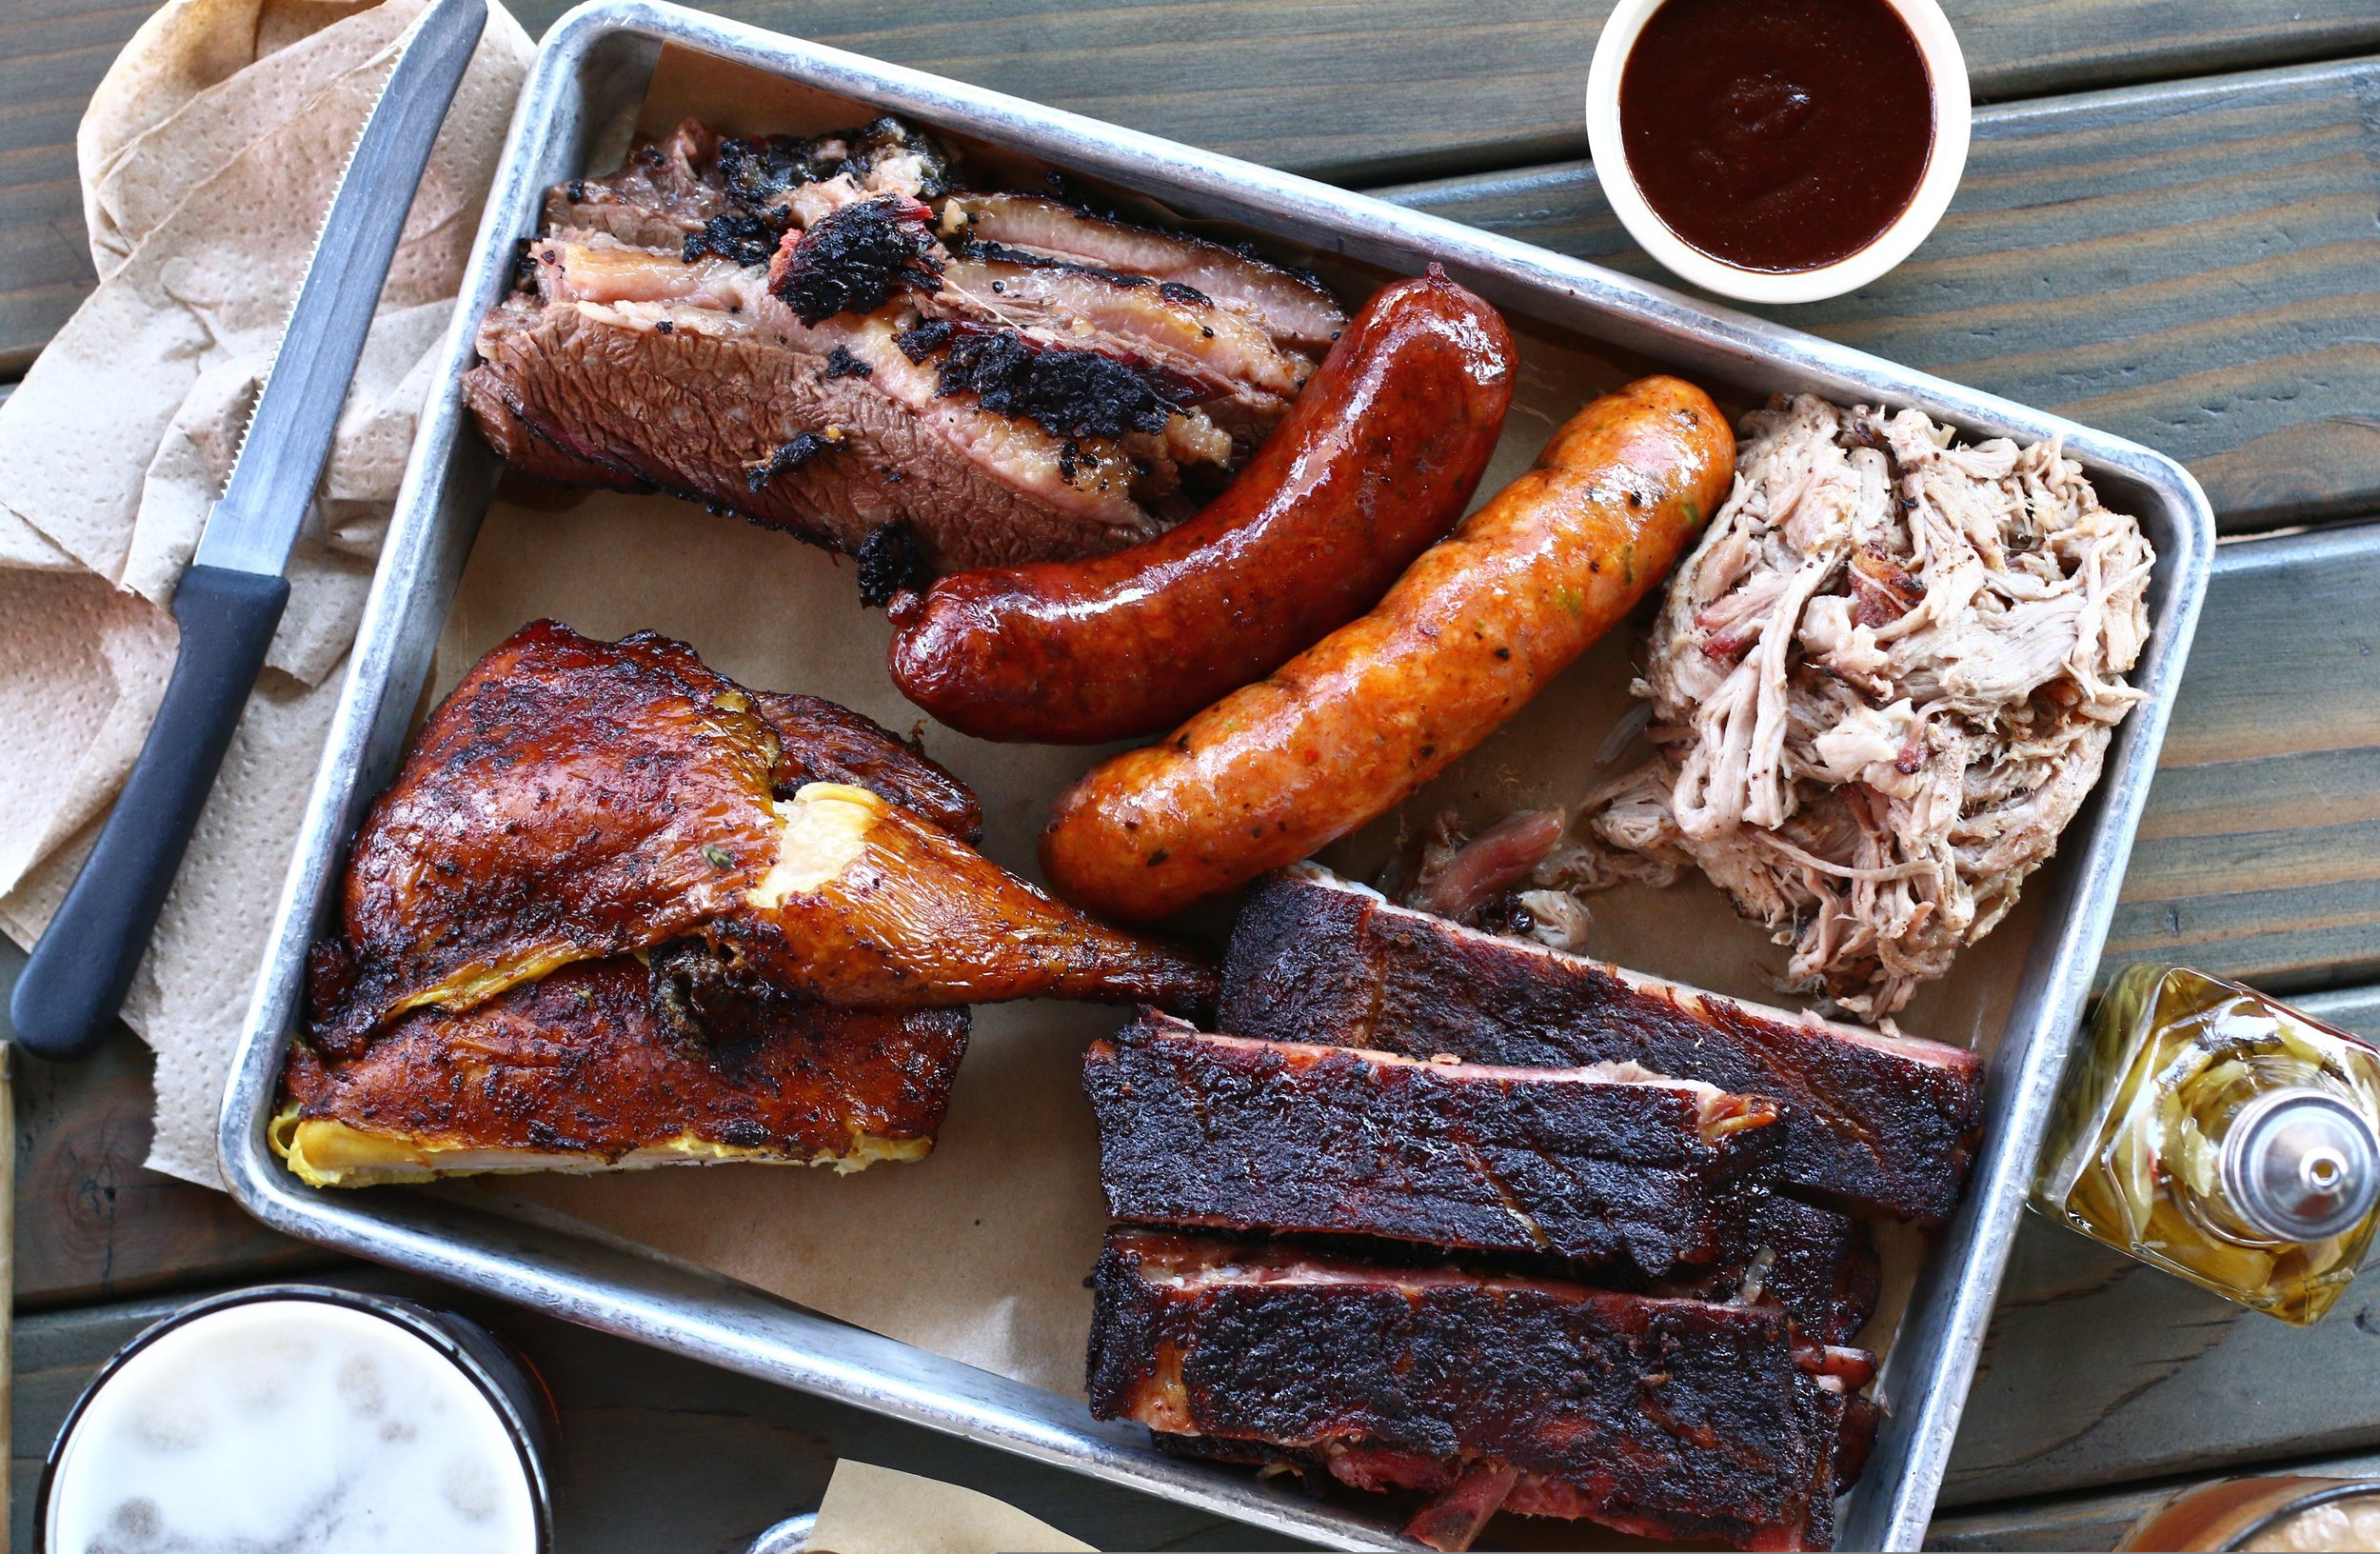 A sheet pan of smoked meats from Bludso's Bar and Que